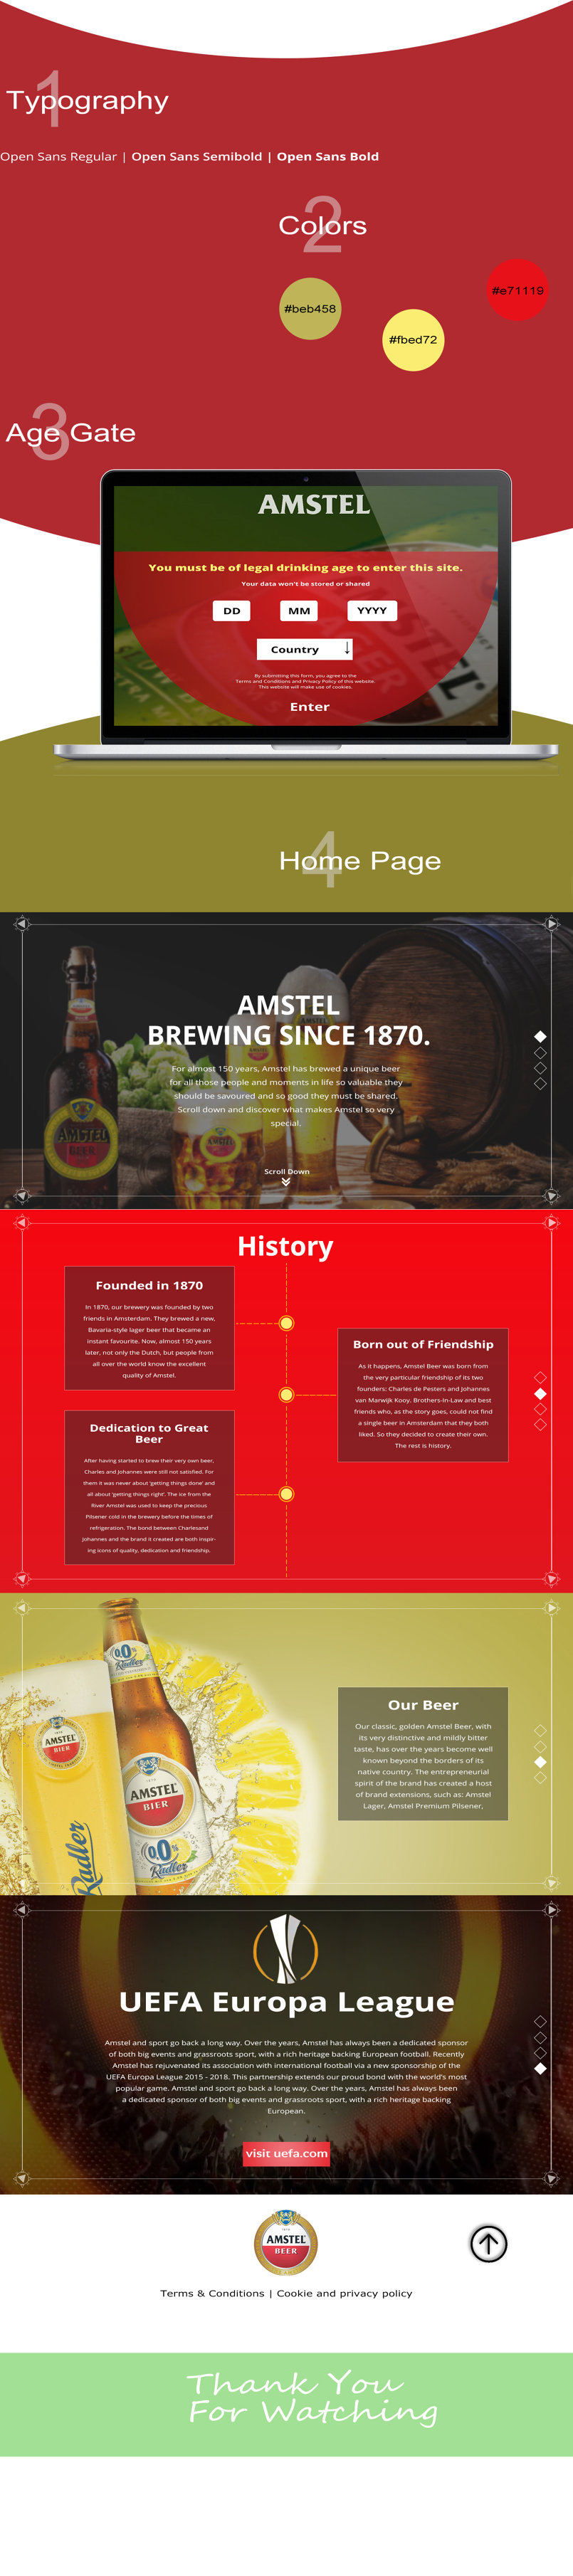 Amstel Website Redesign Concept